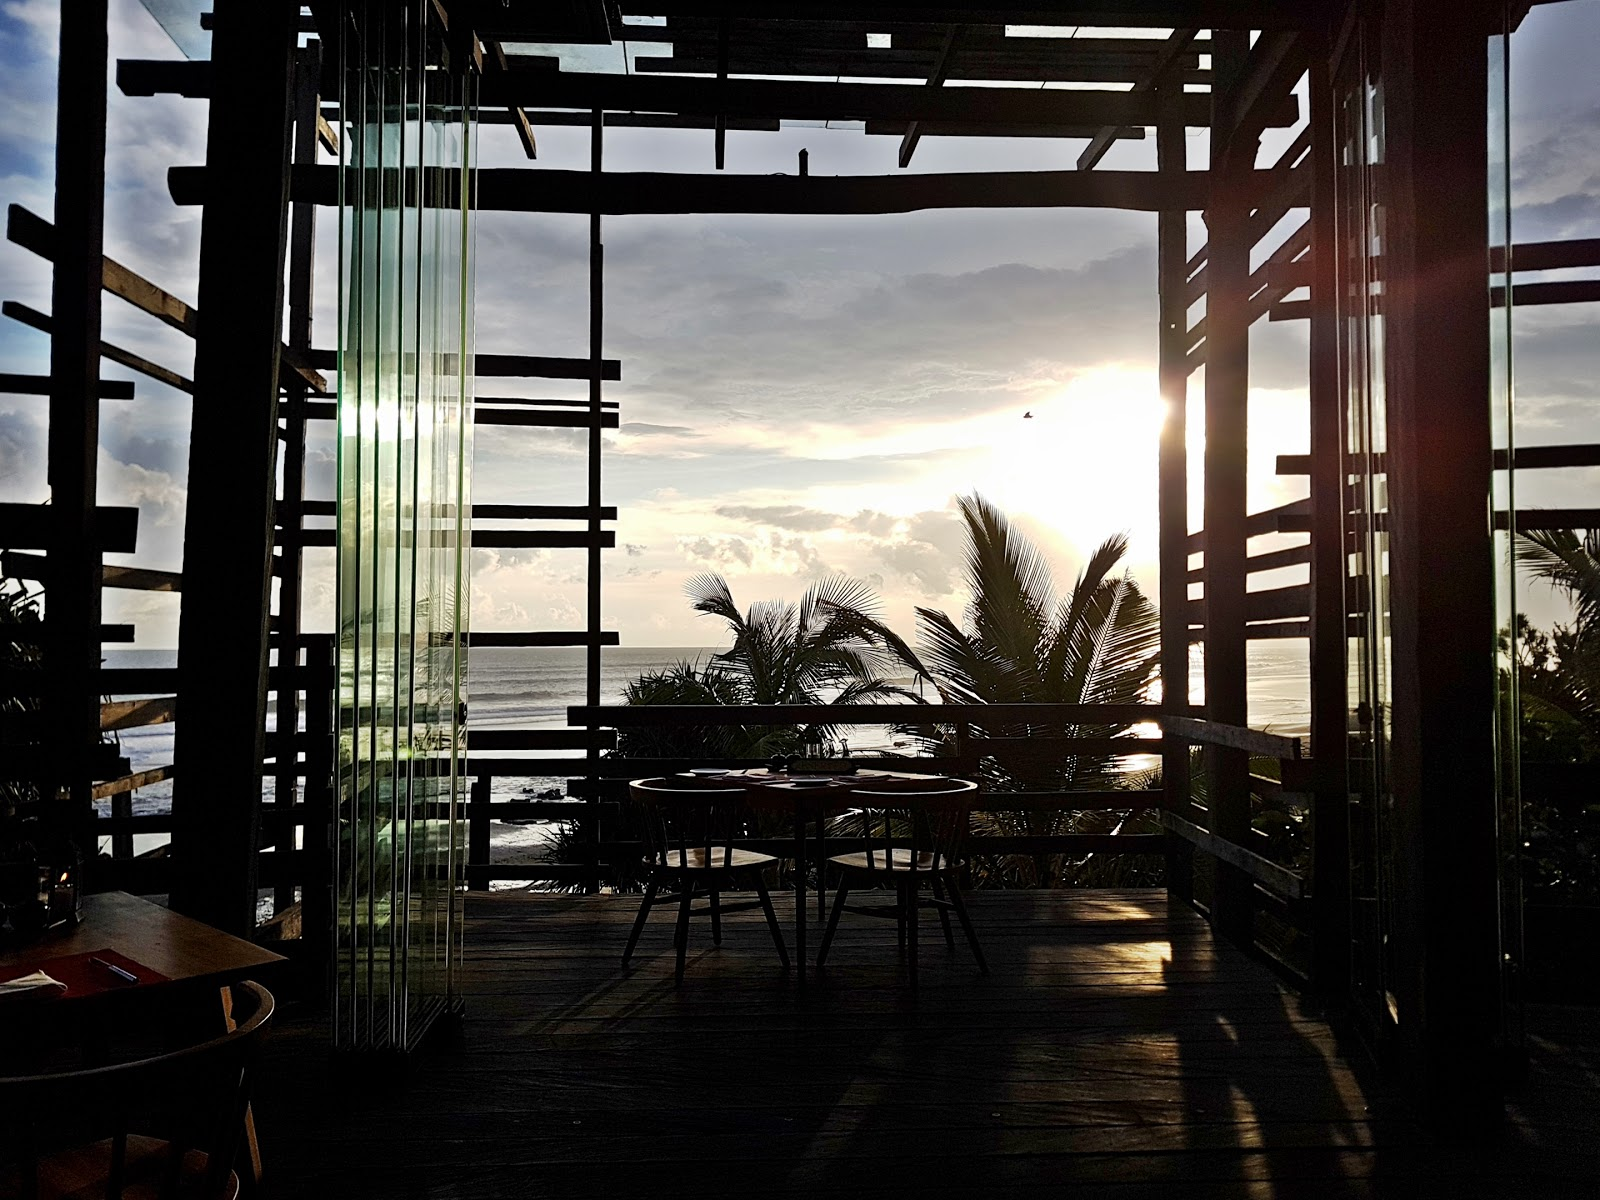 DELUXSHIONIST LUXURY TRAVEL - ENJOY SUNSET AT WAKA BAR & RESTAURANT